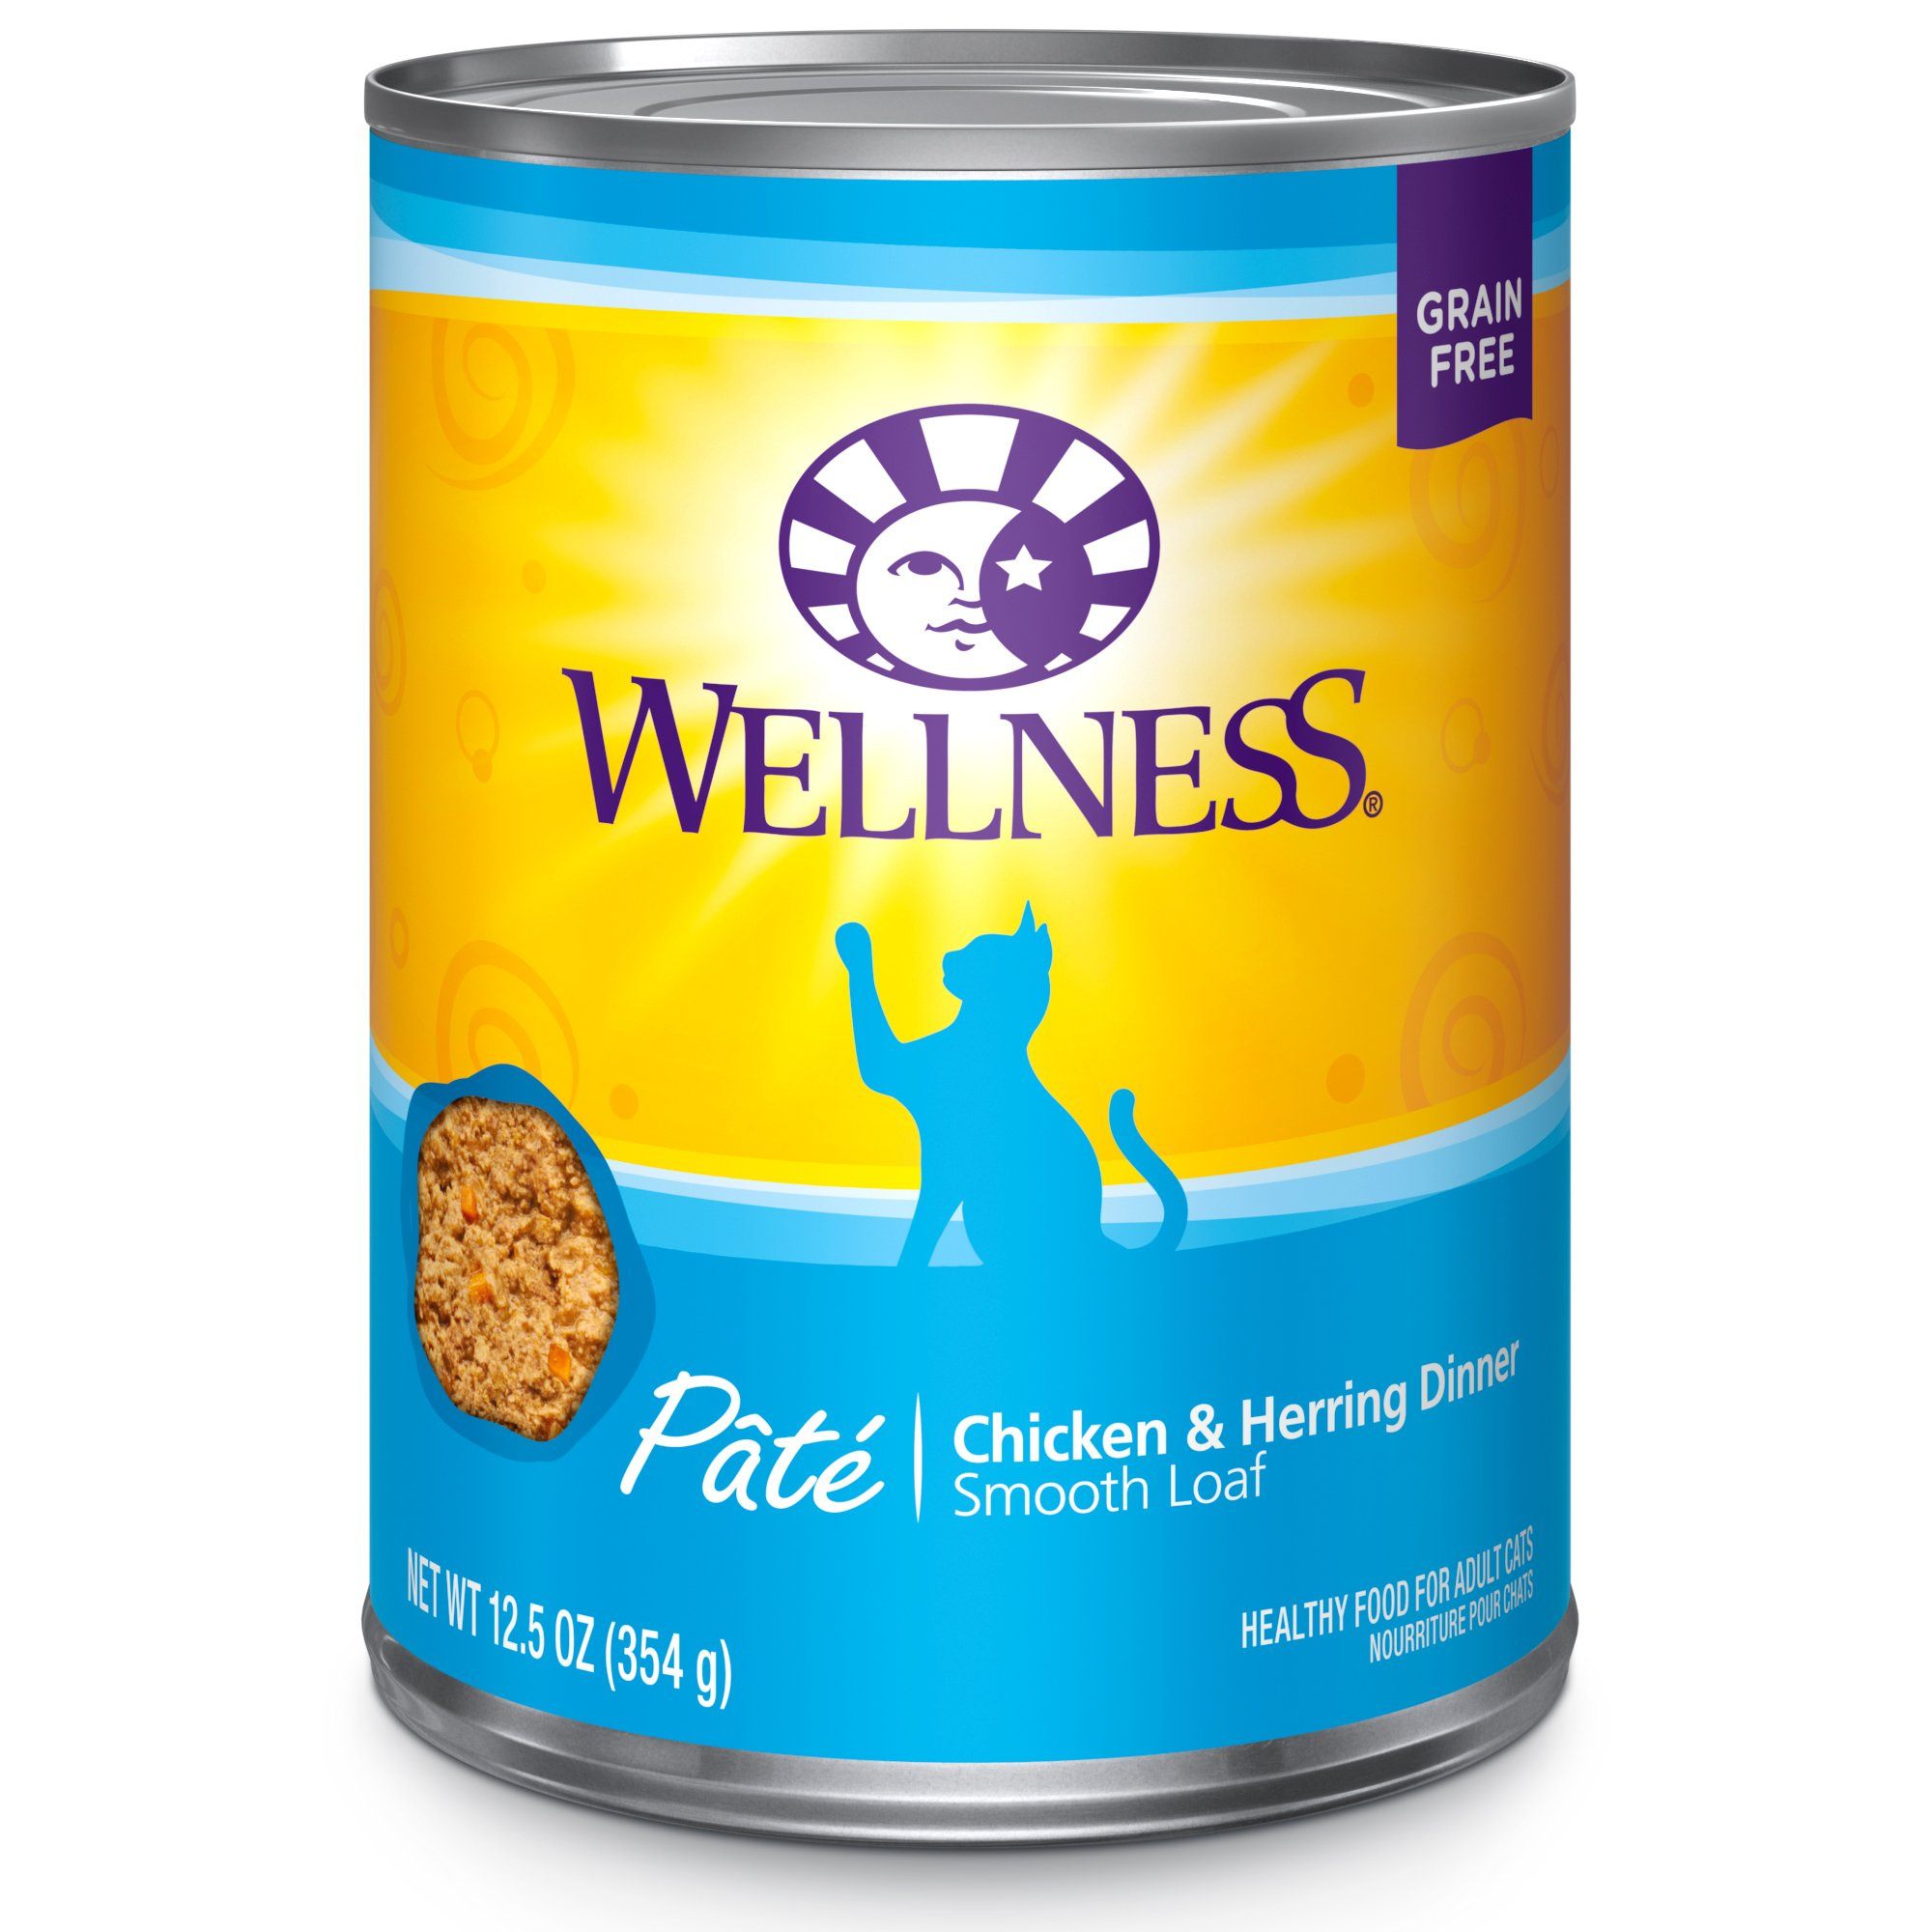 Wellness Natural Grain Free Wet Canned Cat Food, Chicken & Herring Pate, 12.5-Ounce Can - Pack Of 12 by Wellness Natural Pet Food